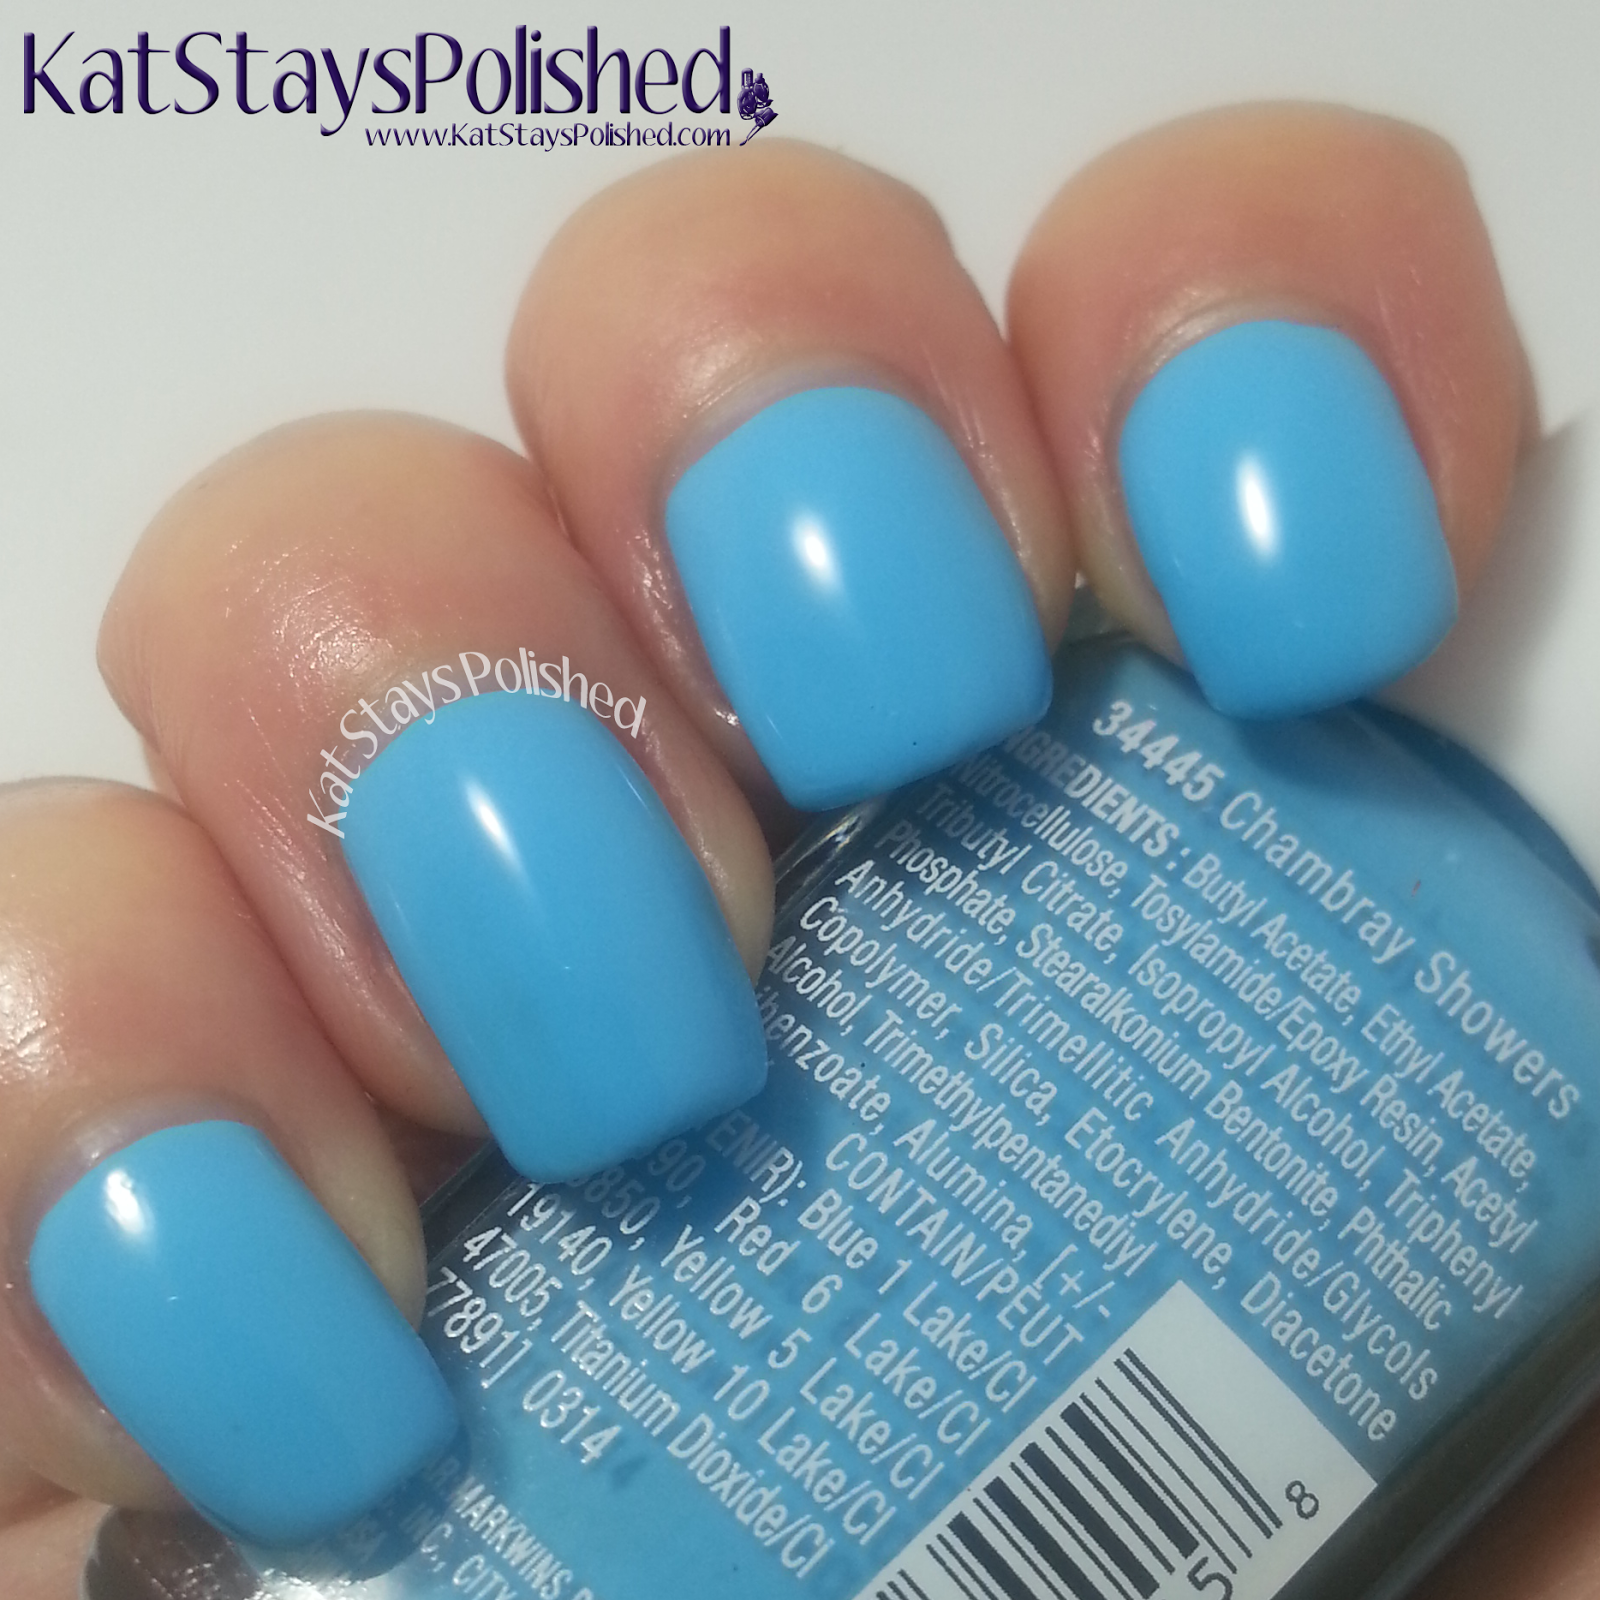 Wet n Wild Summer Festival Nail Color - Chambray Showers | Kat Stays Polished